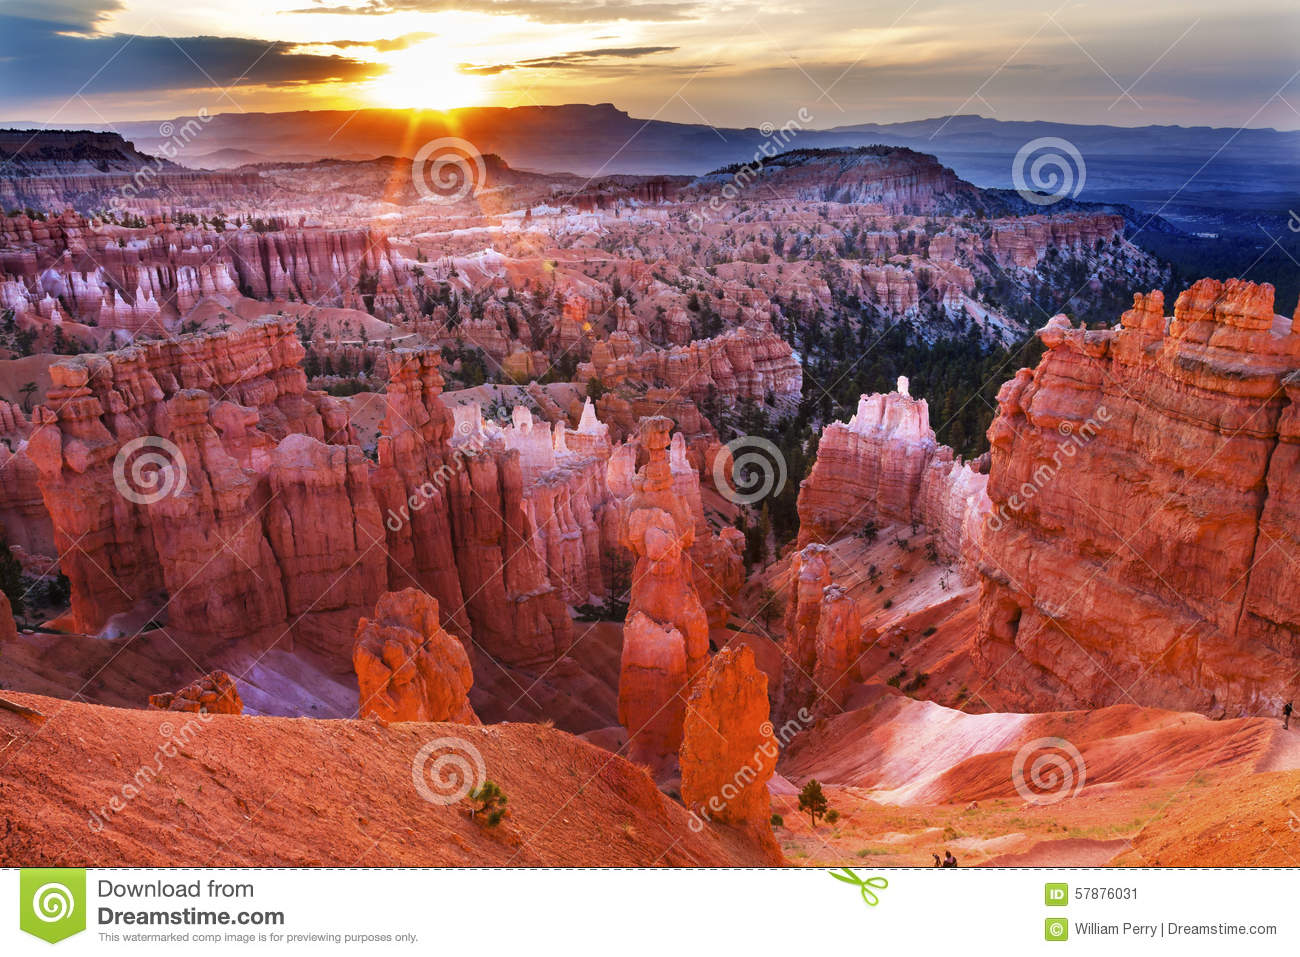 Bryce Canyon National Park clipart #10, Download drawings